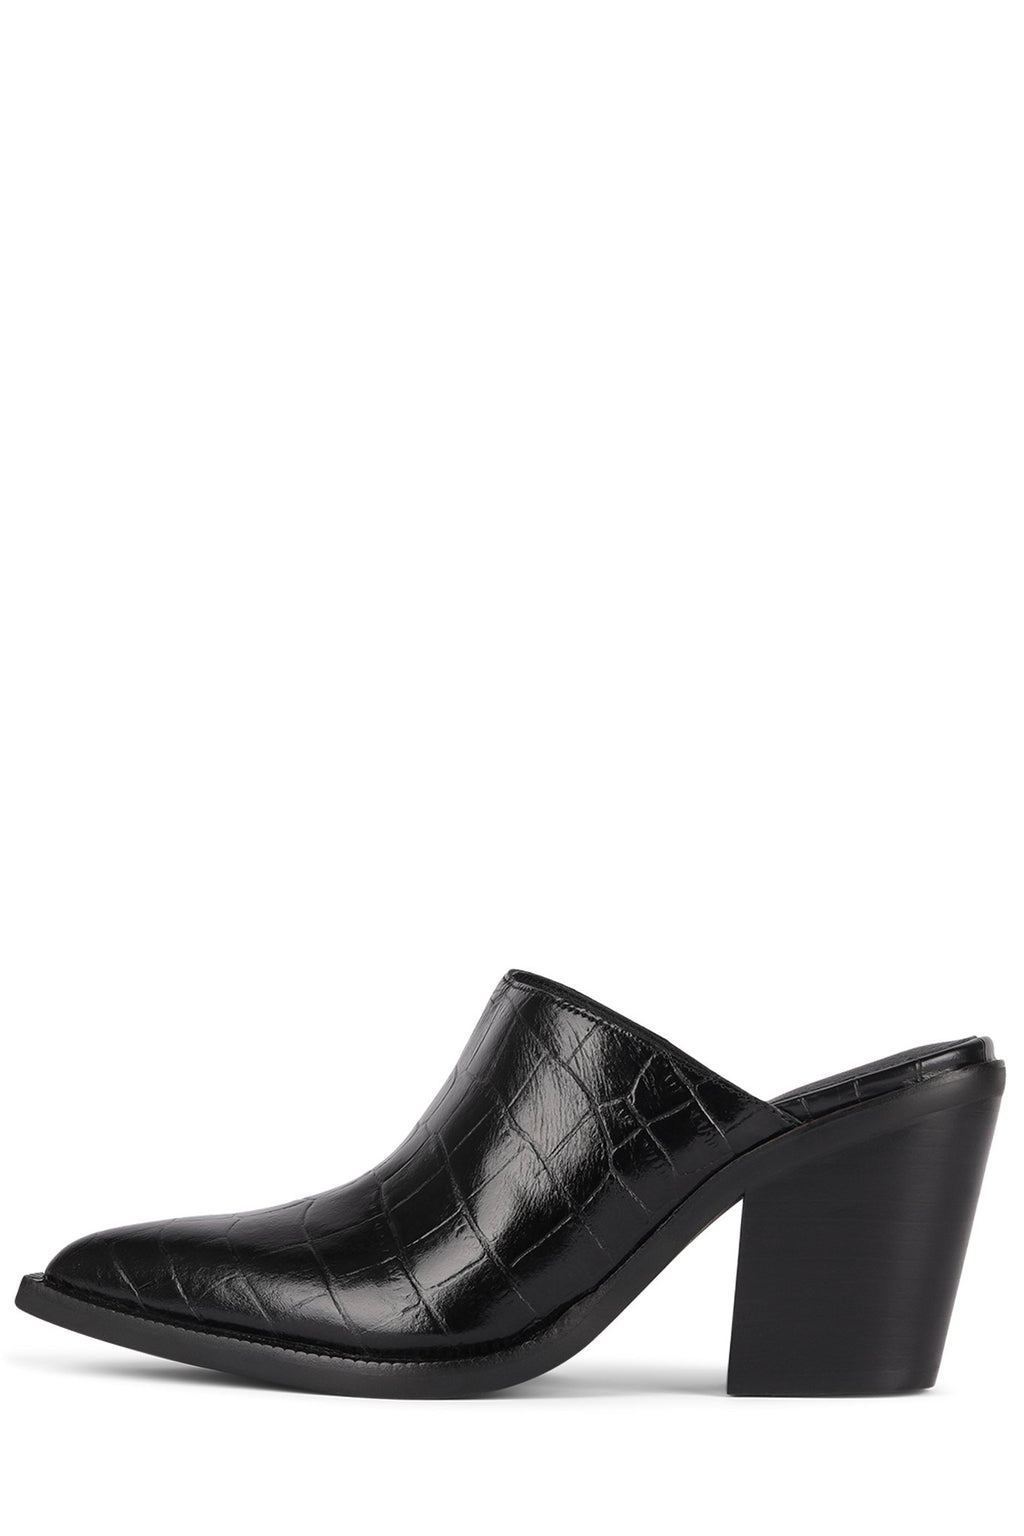 TONTO-2 Heeled Mule Jeffrey Campbell Black Croco 6